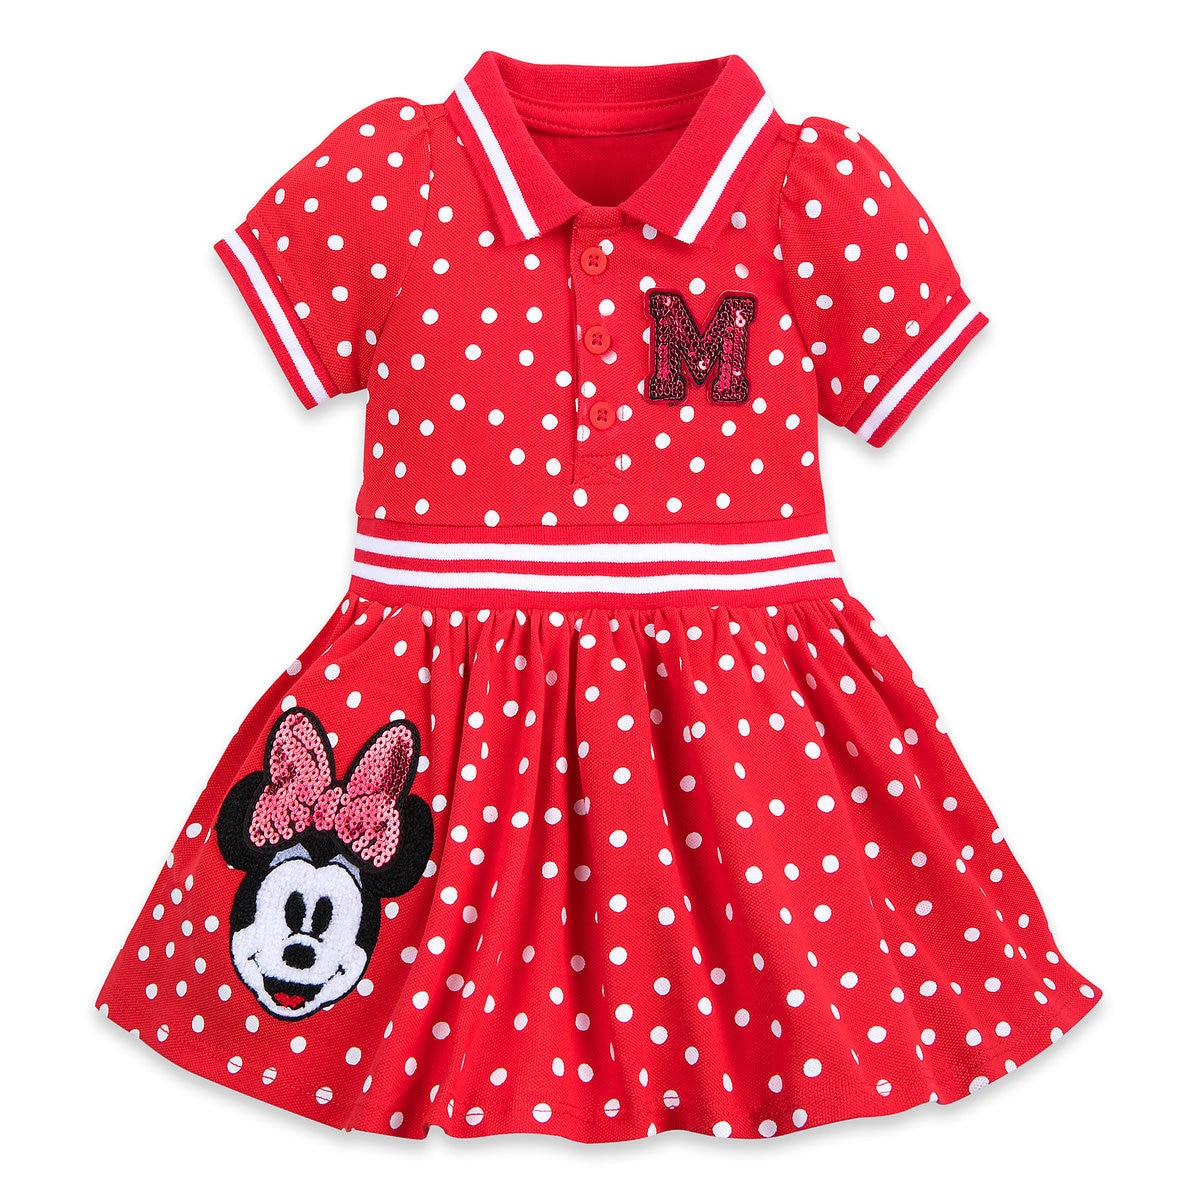 ca40ce4fb Product Image of Minnie Mouse Red Polka Dot Dress for Baby # 1